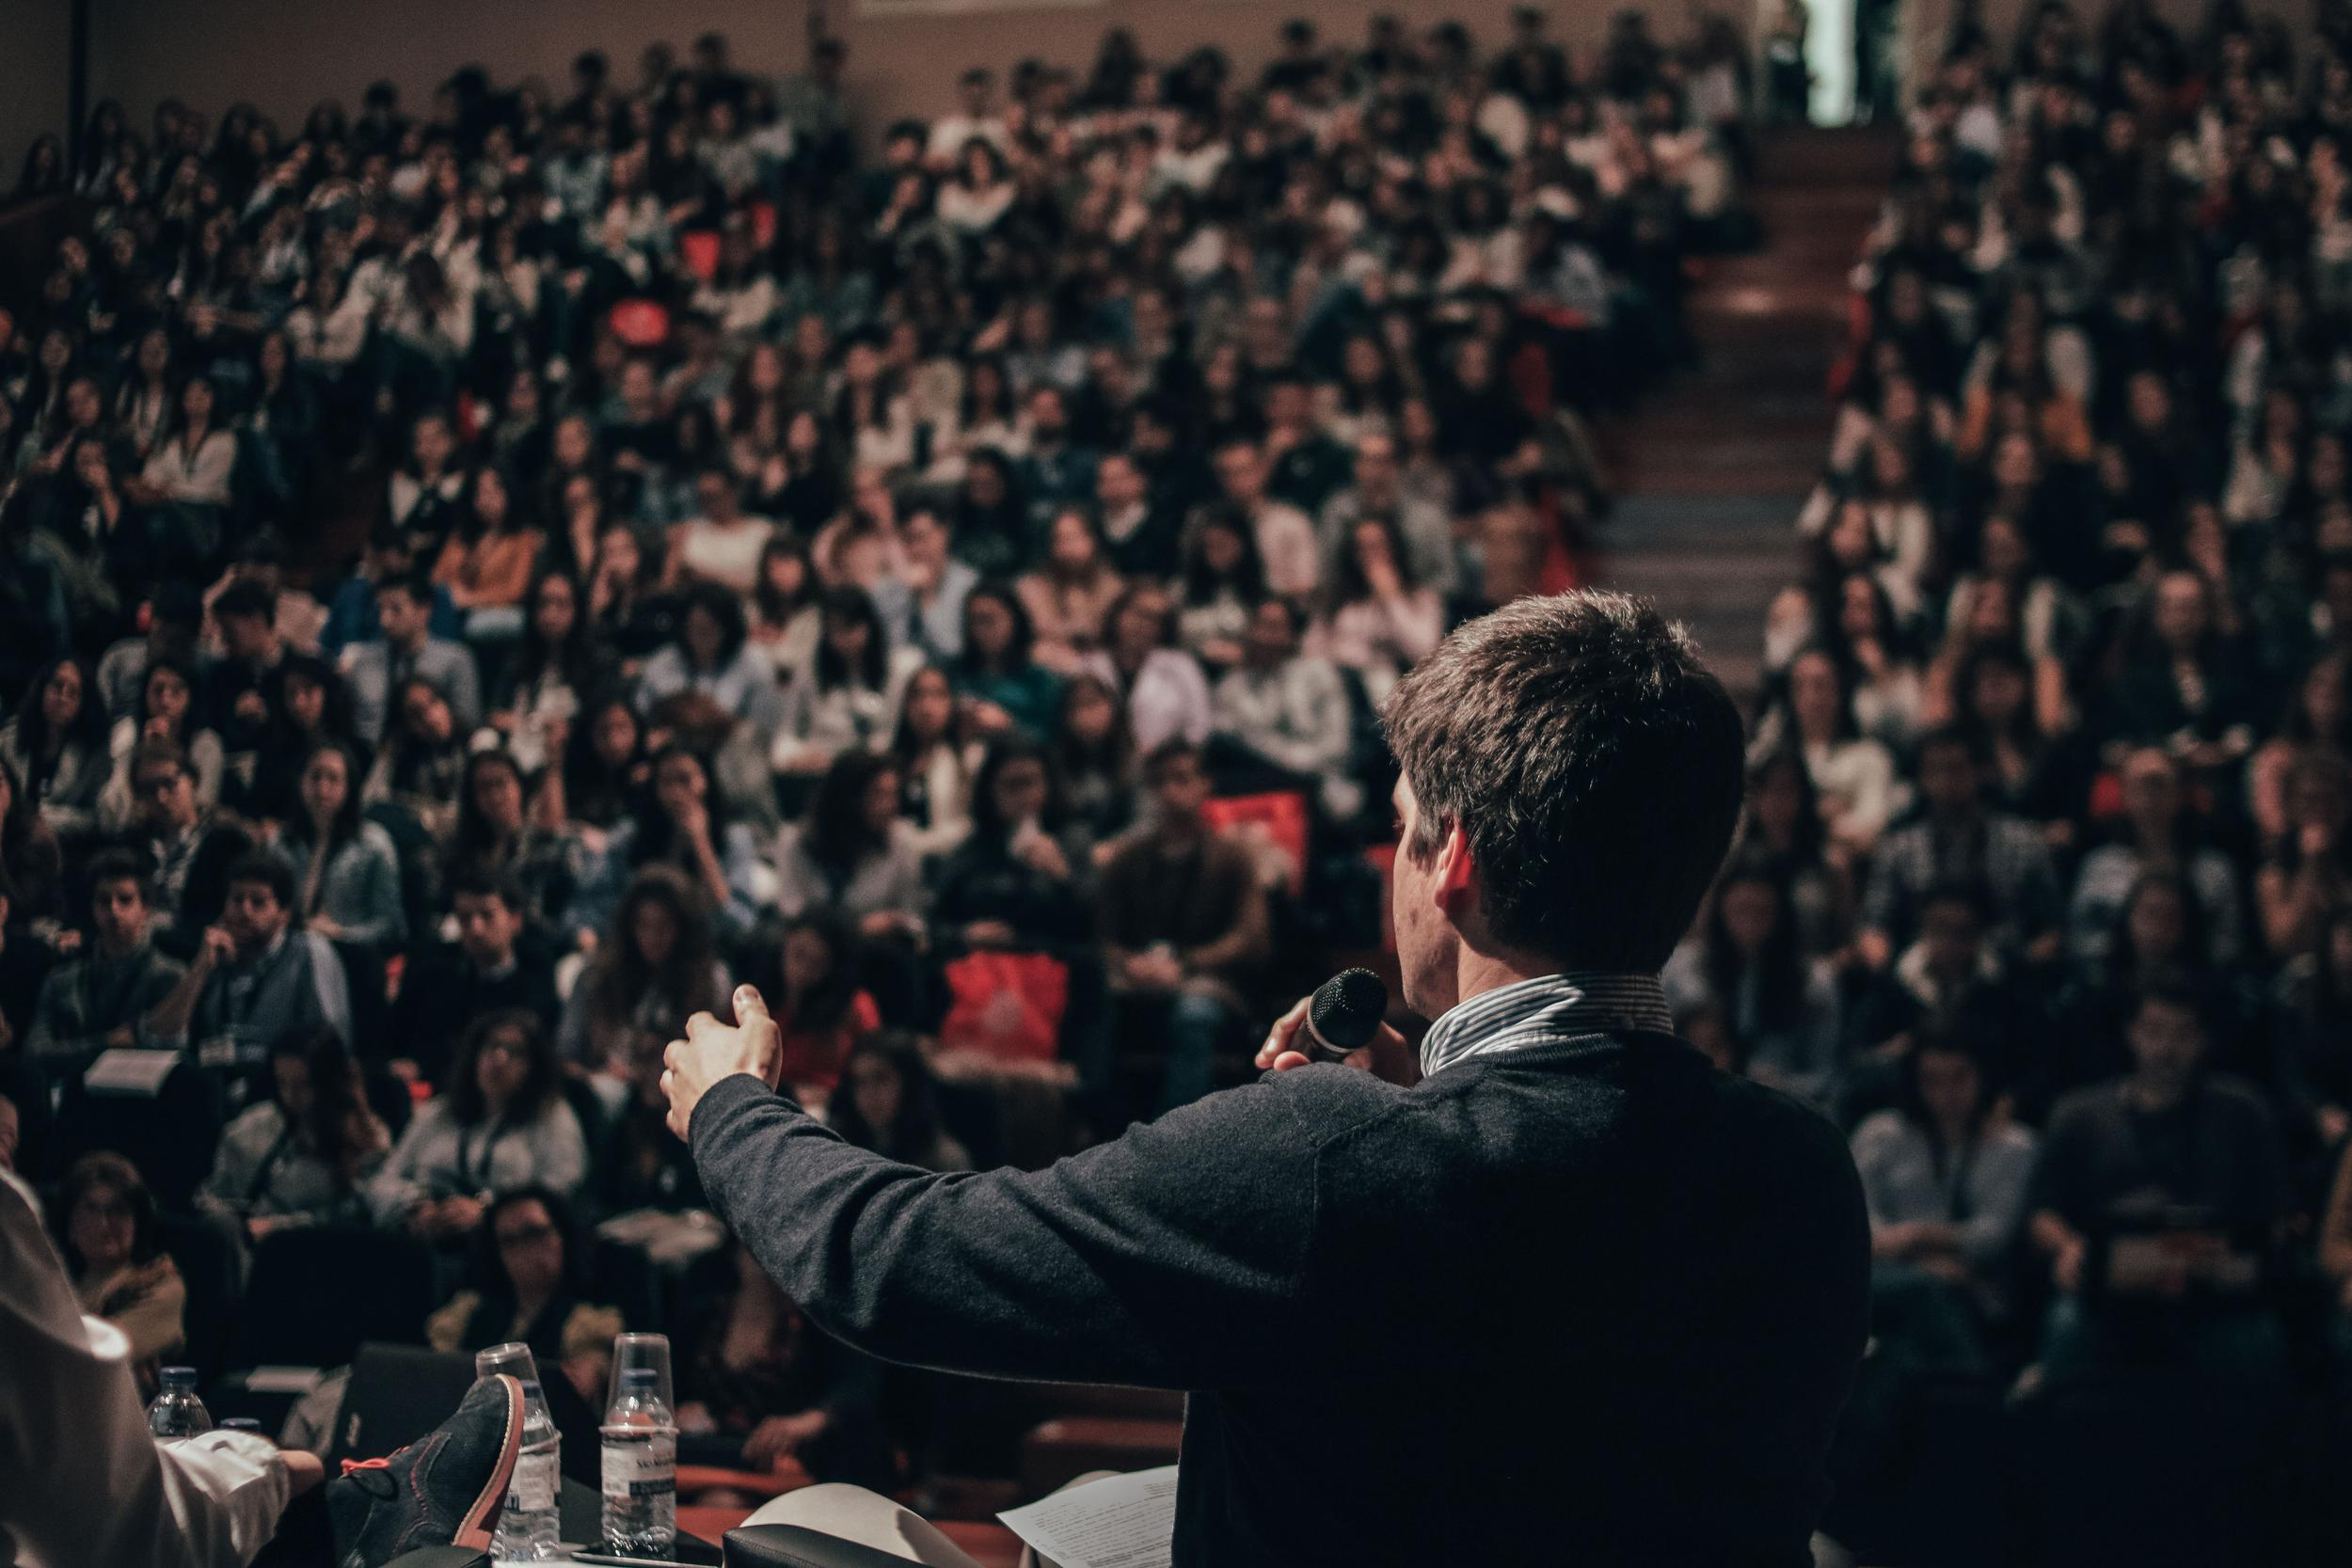 public speaking-unsplash.jpg